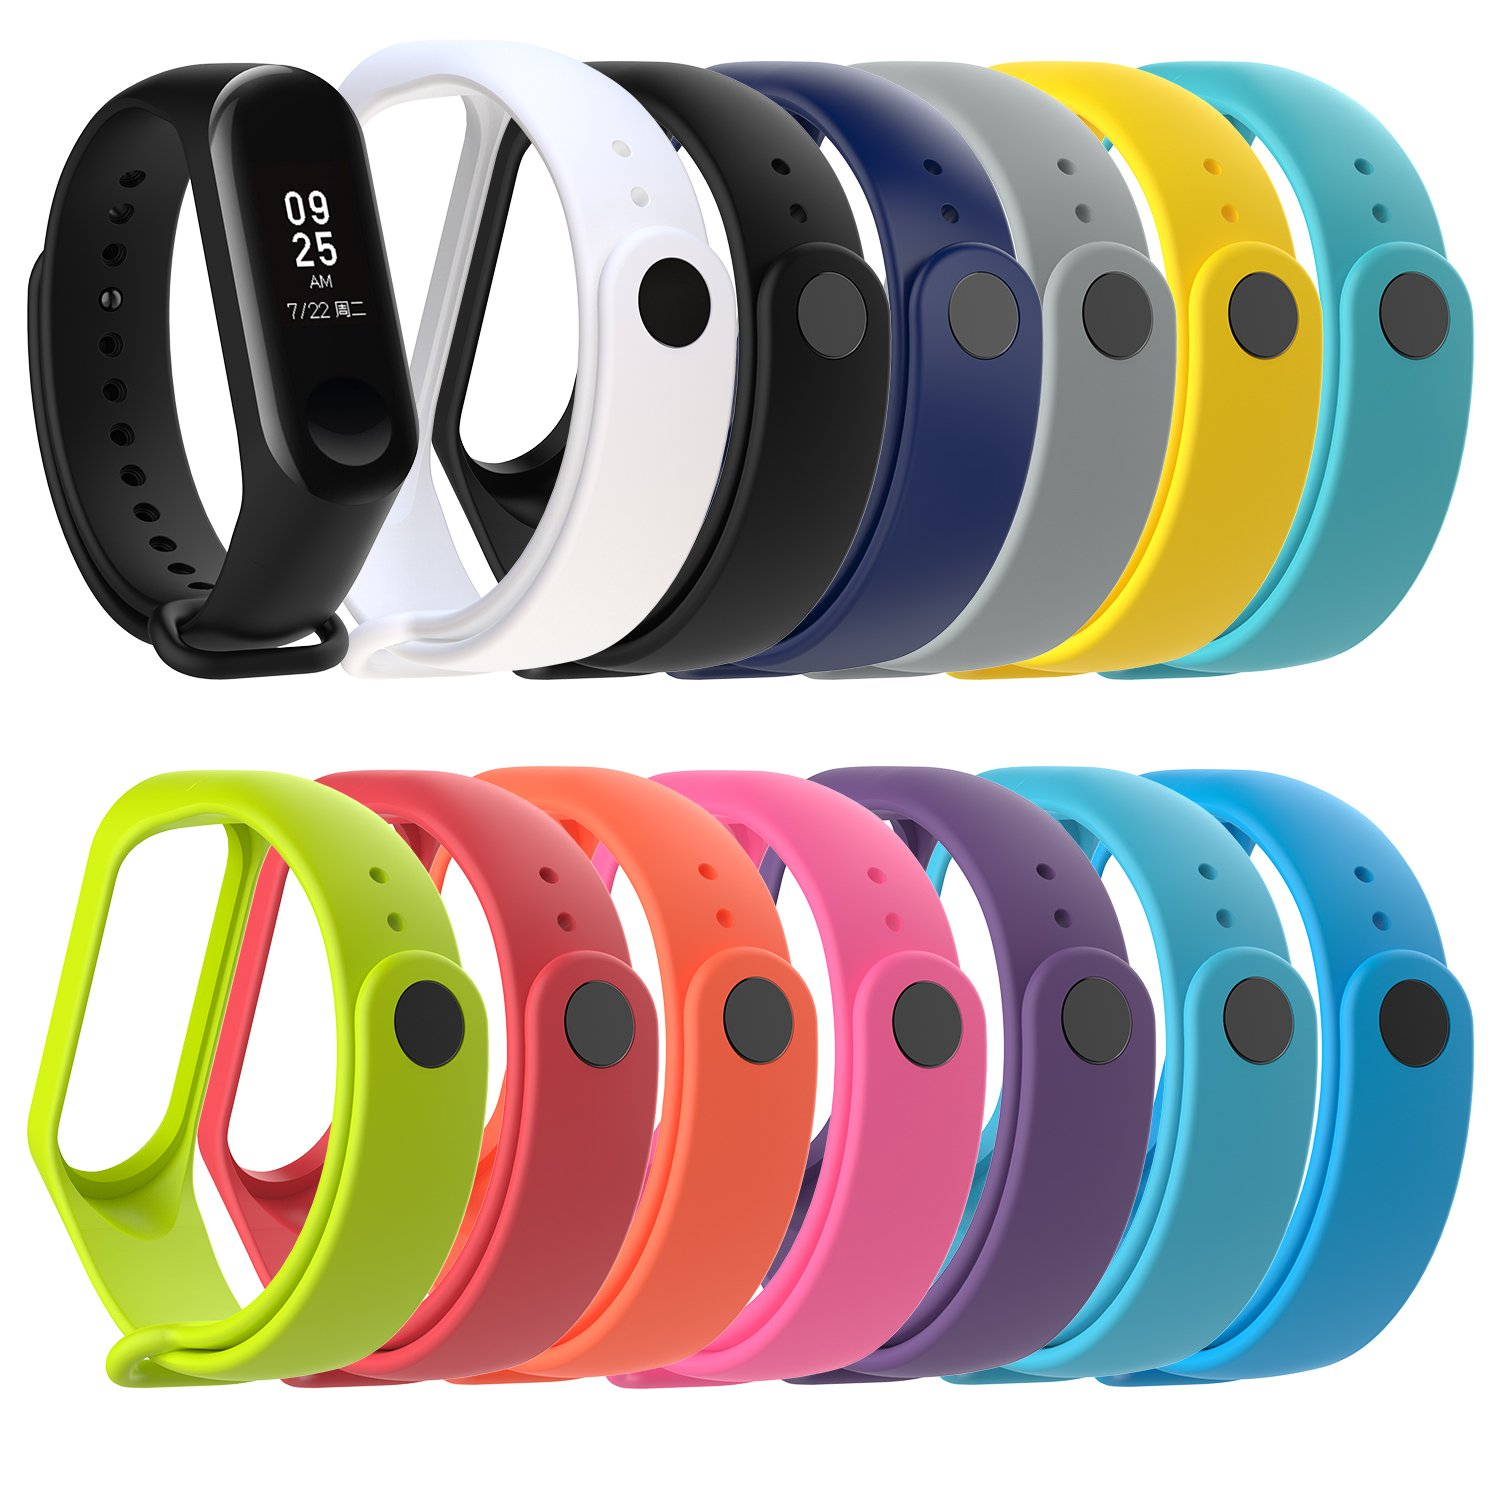 TOMALL Xiaomi Mi Band 3 Adjustable Replacement Silicone Wristband Strap Waterproof Strap